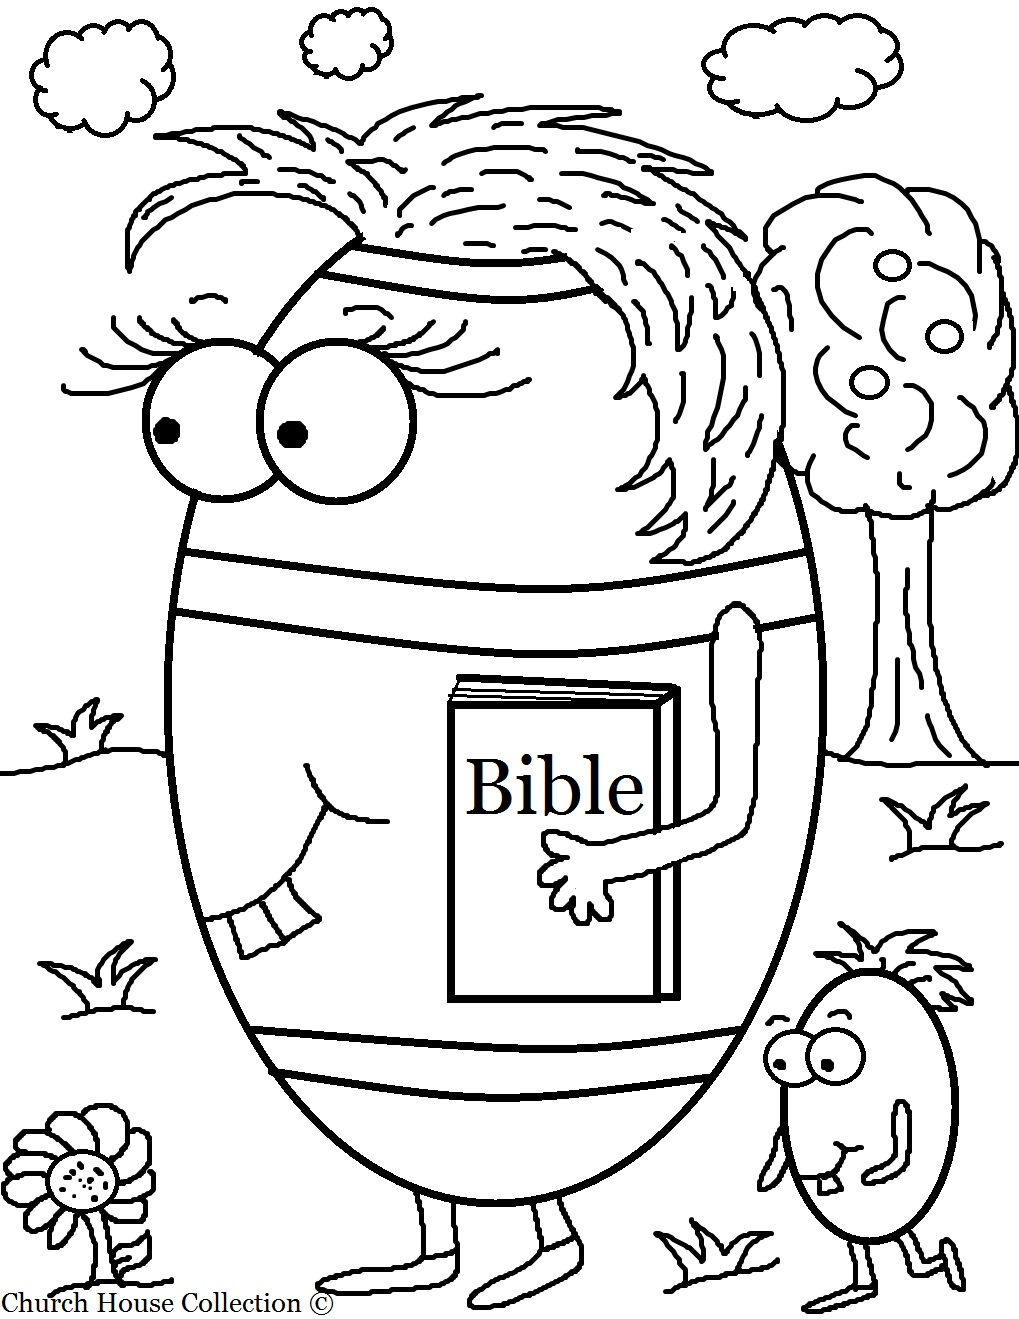 Bible Coloring Pages For Toddlers Coloring Pages Gallery